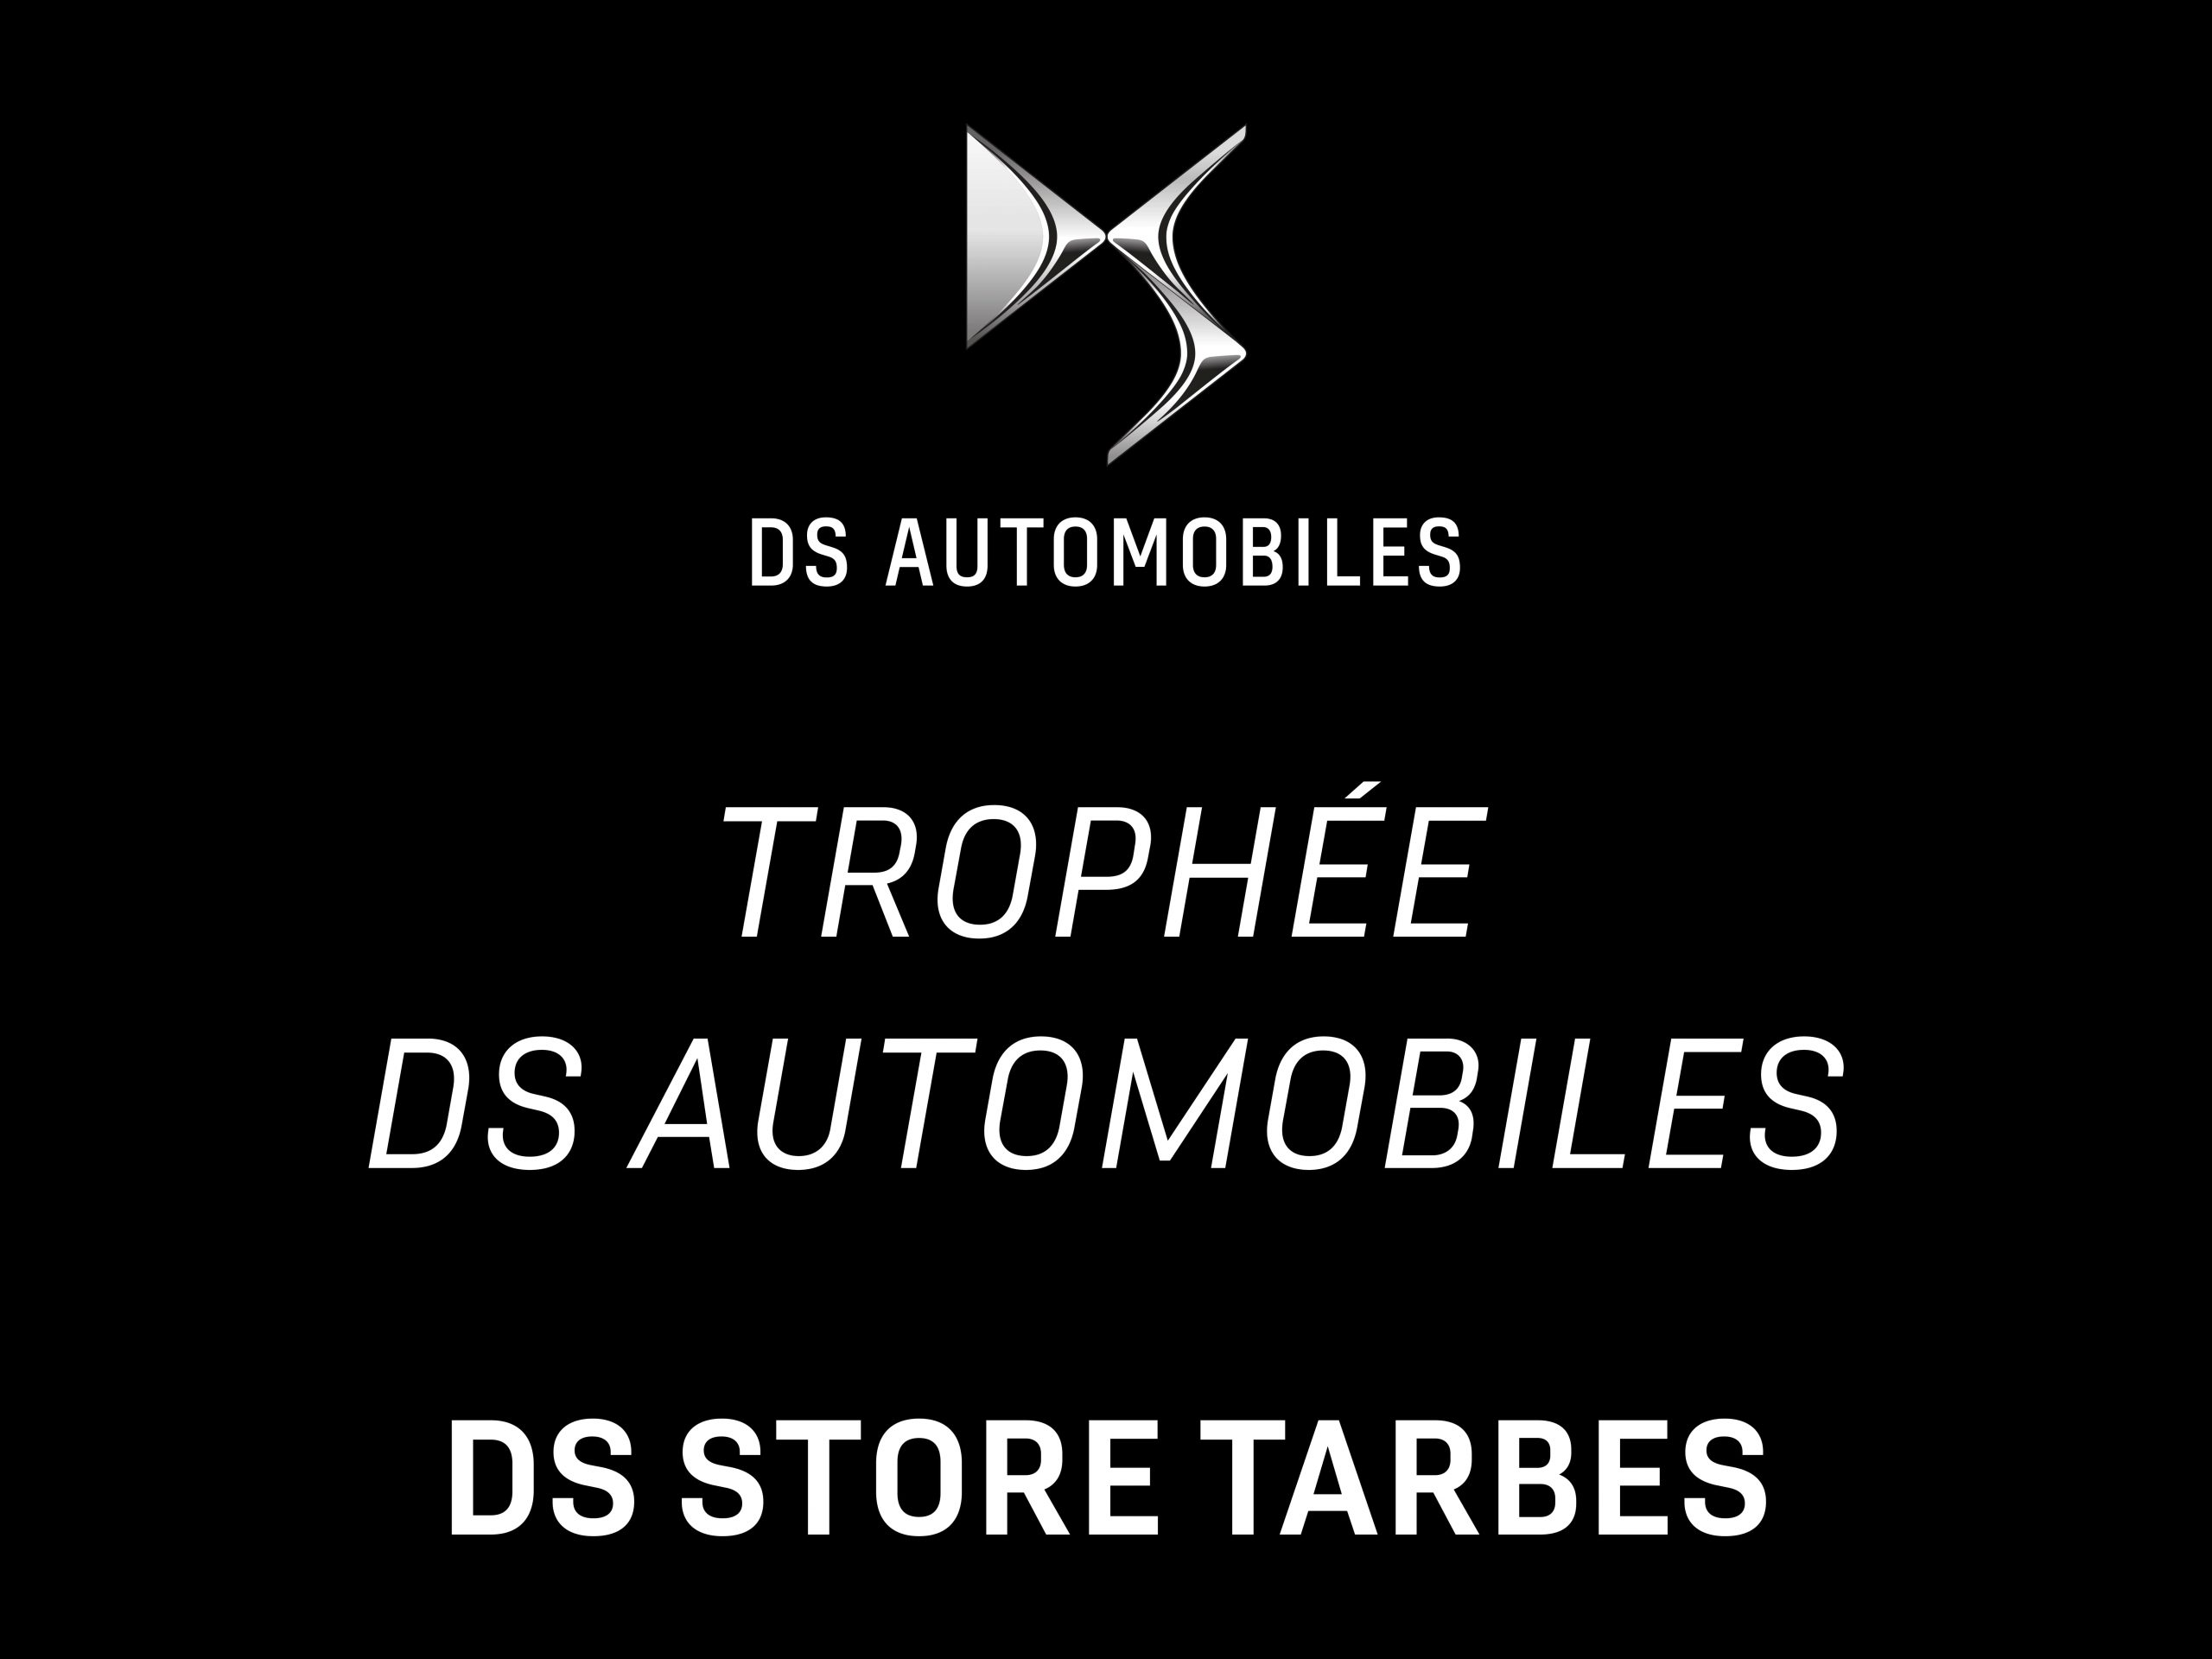 DS STORE TARBES